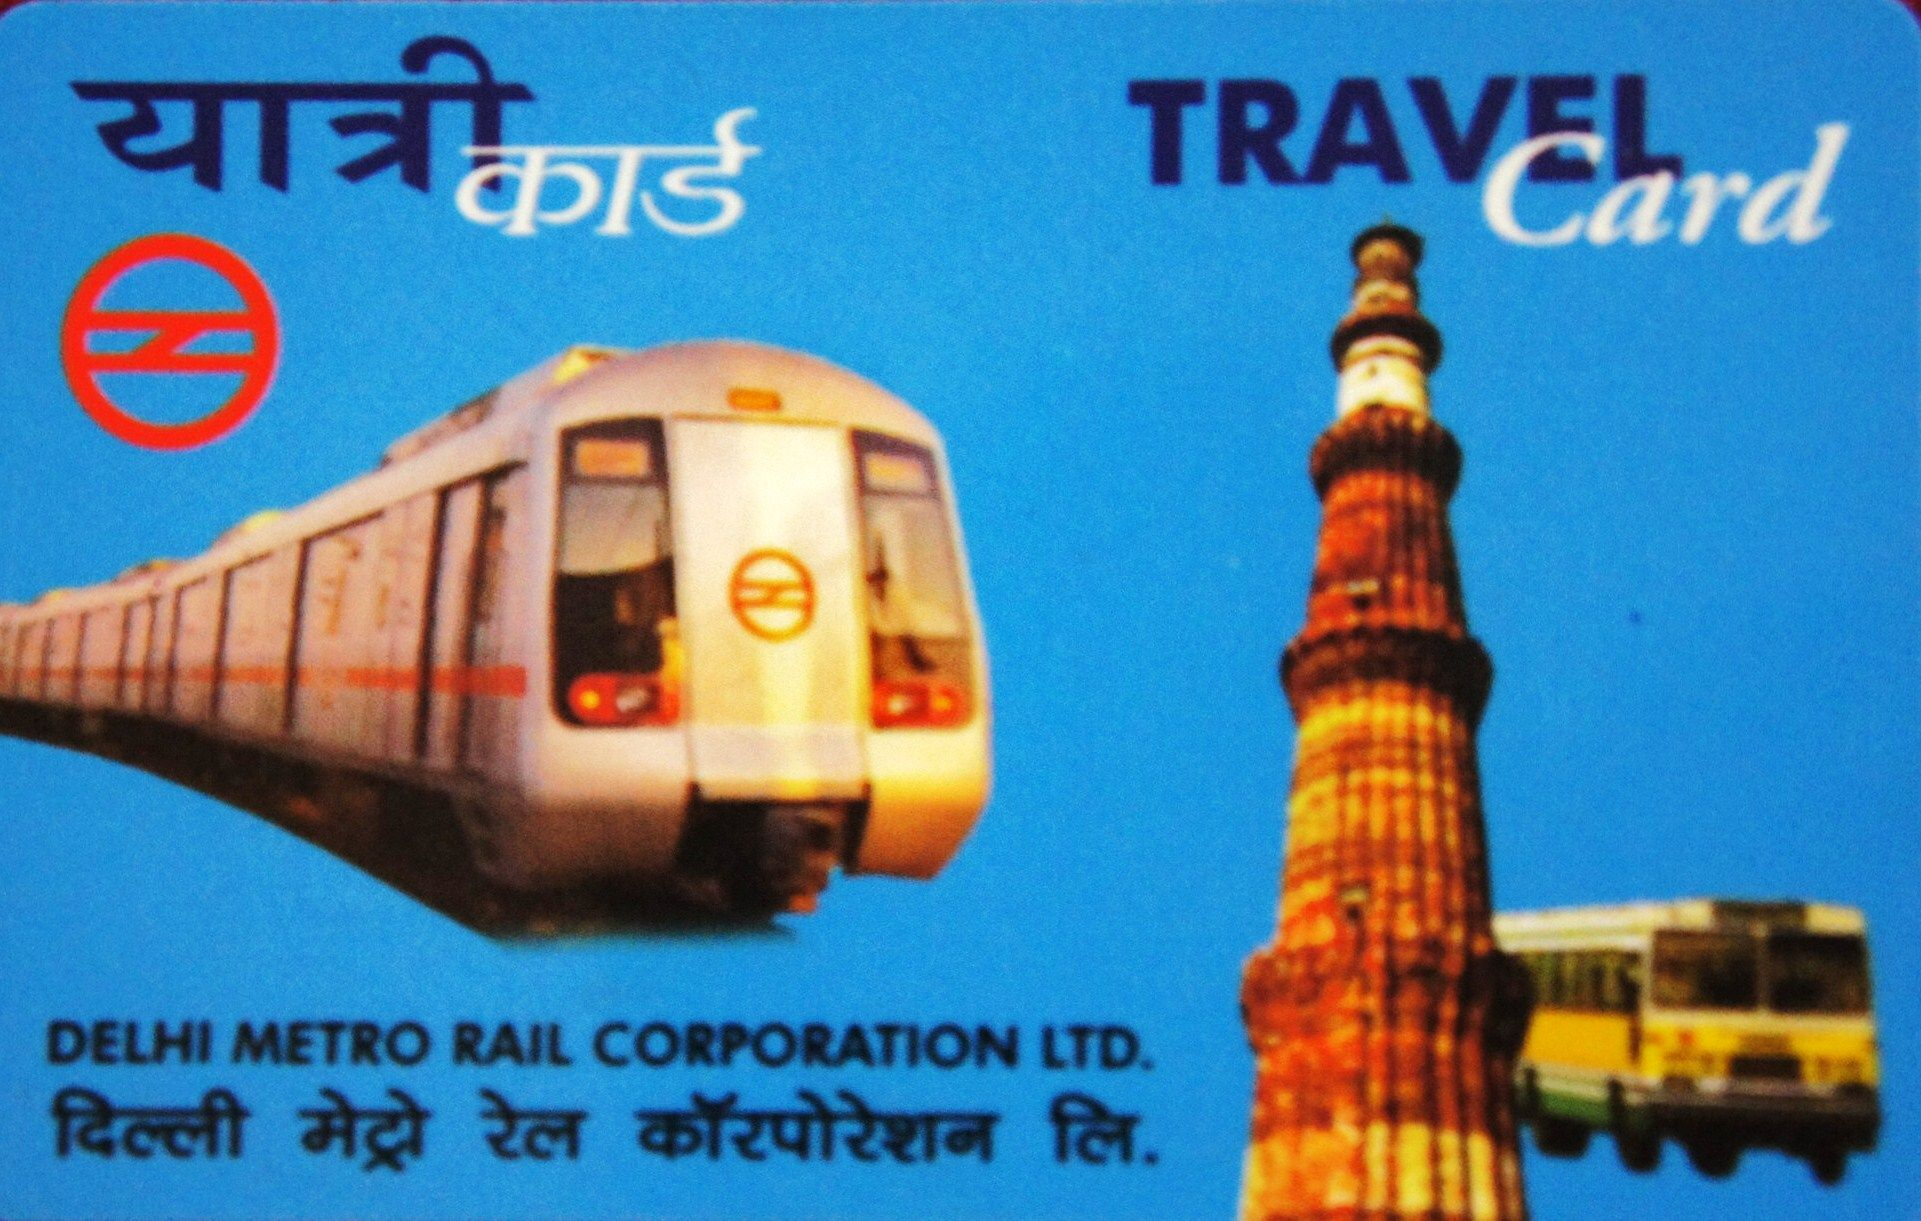 How to recharge and check Delhi Metro Card balance online